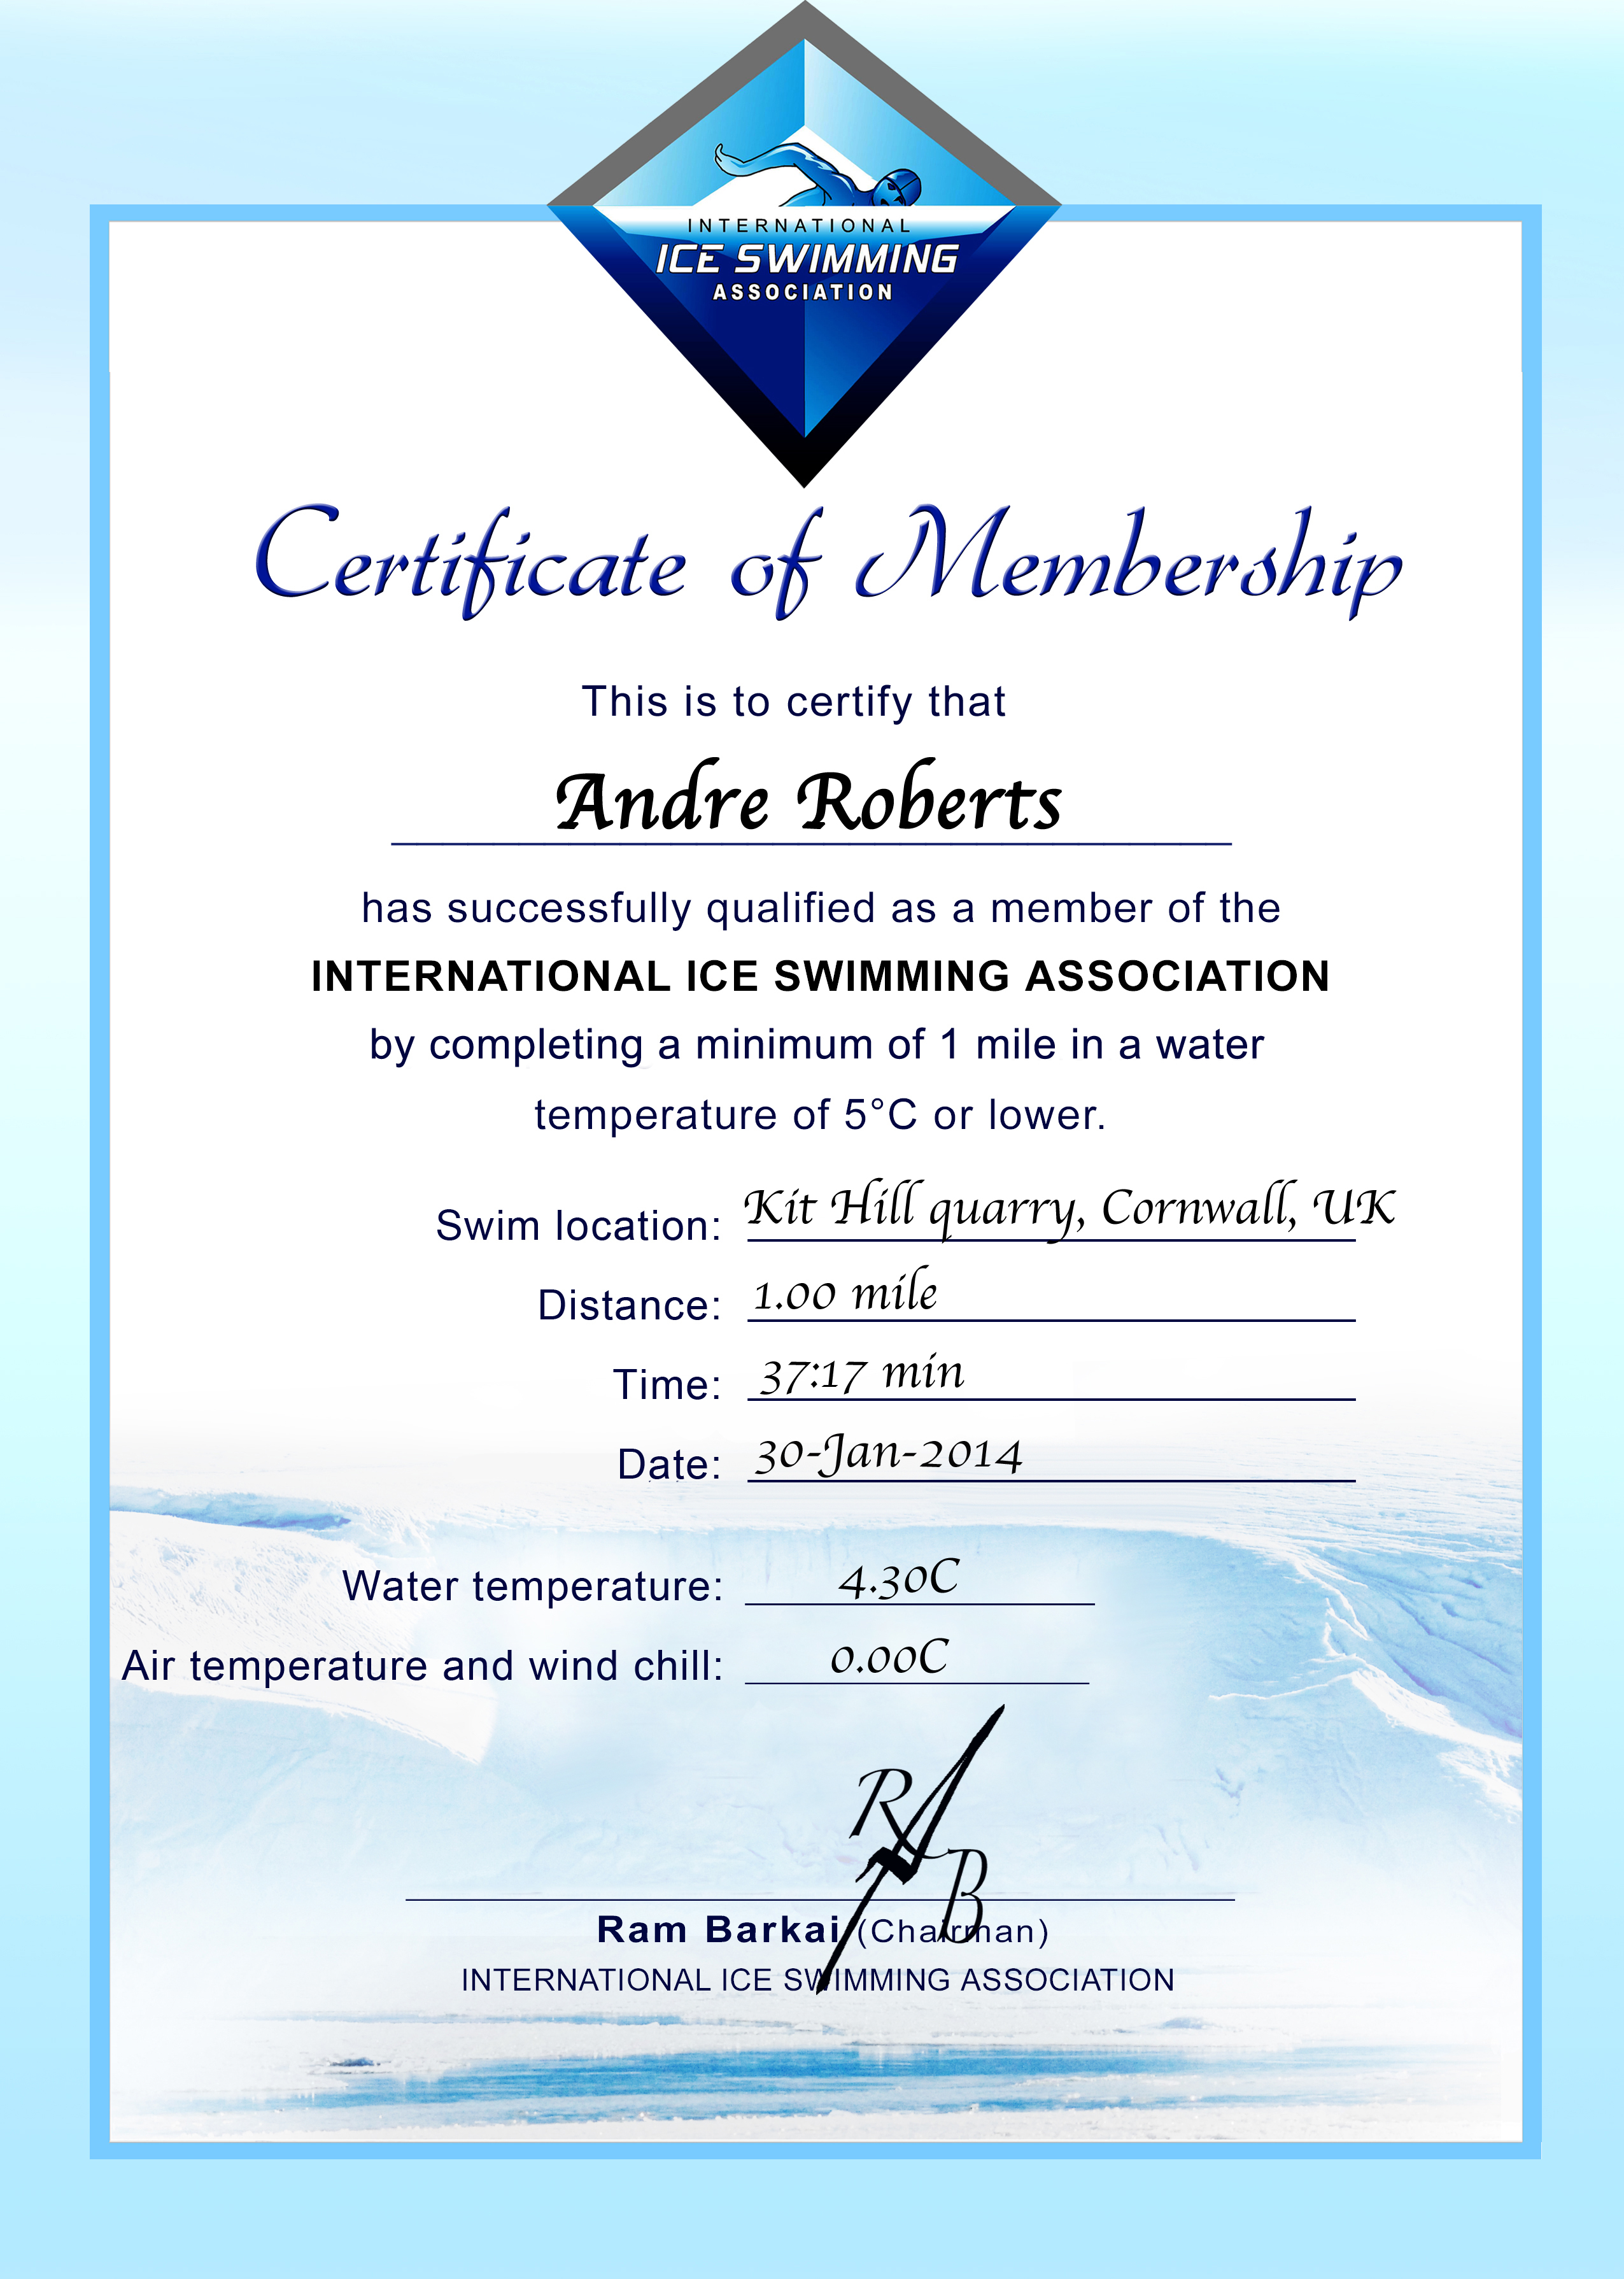 Ice Mile Certificate - Andre Roberts